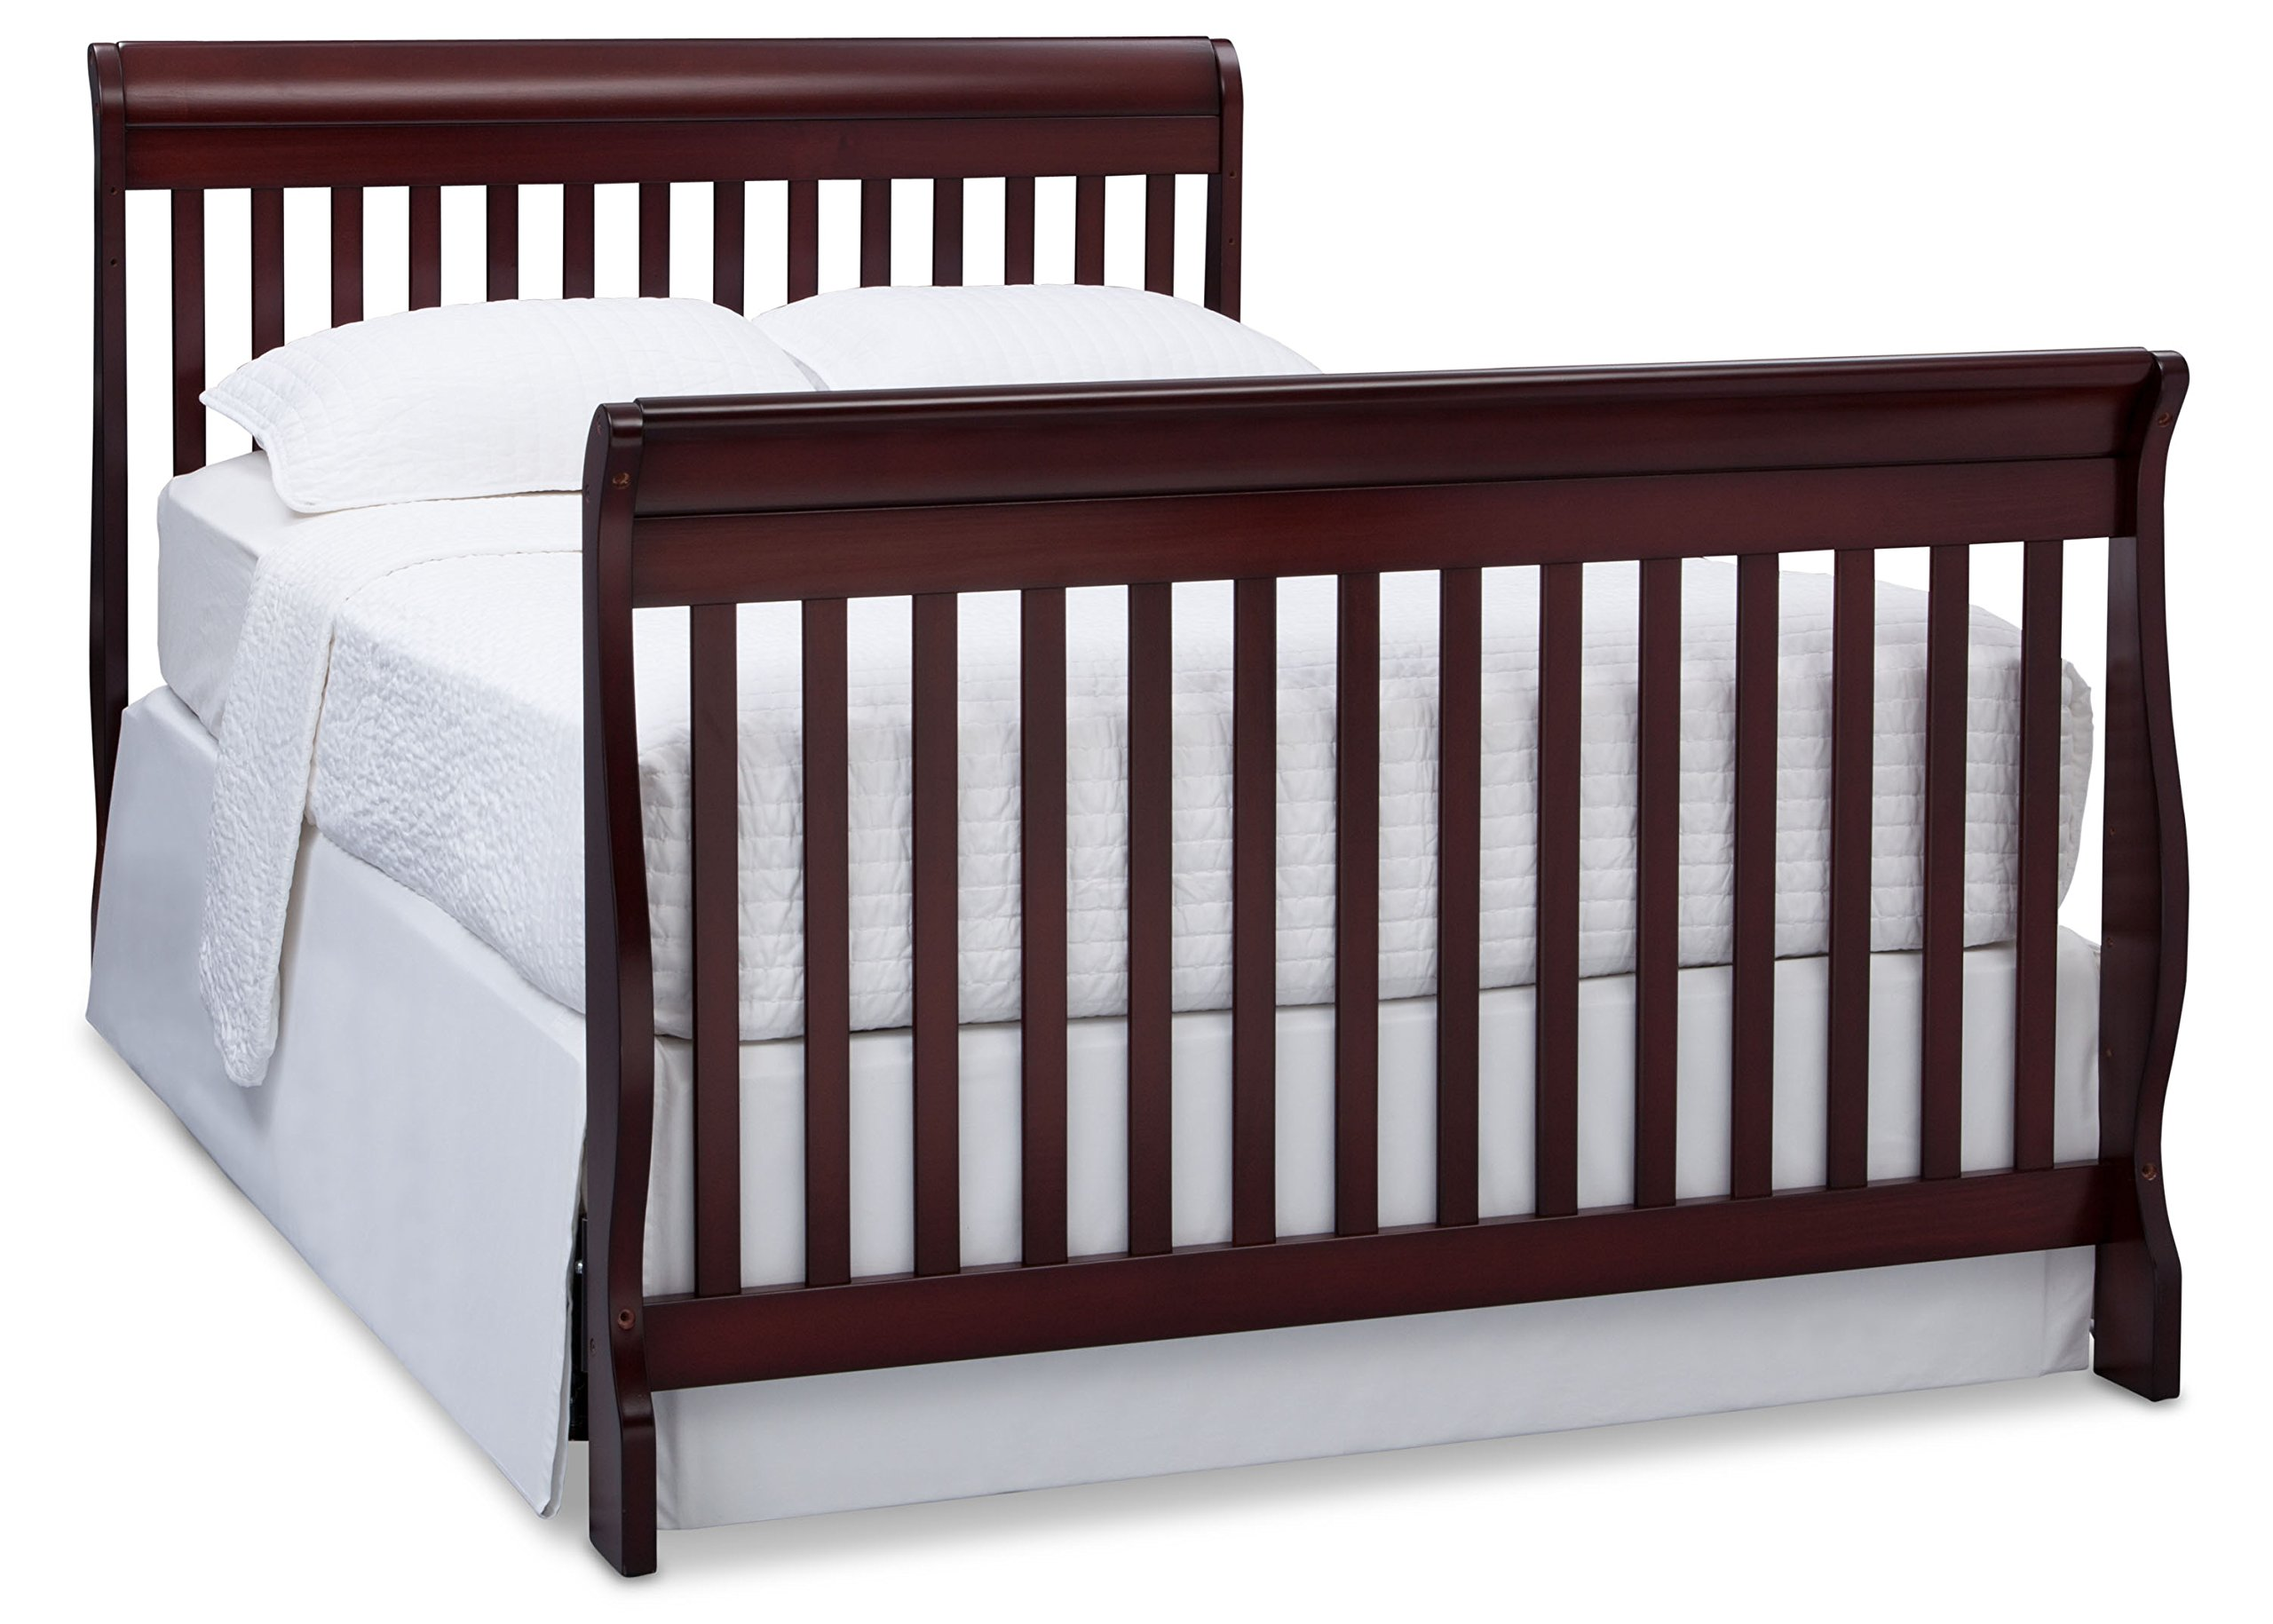 Delta Children Canton 4-in-1 Convertible Crib, Espresso Cherry by Delta Children (Image #7)